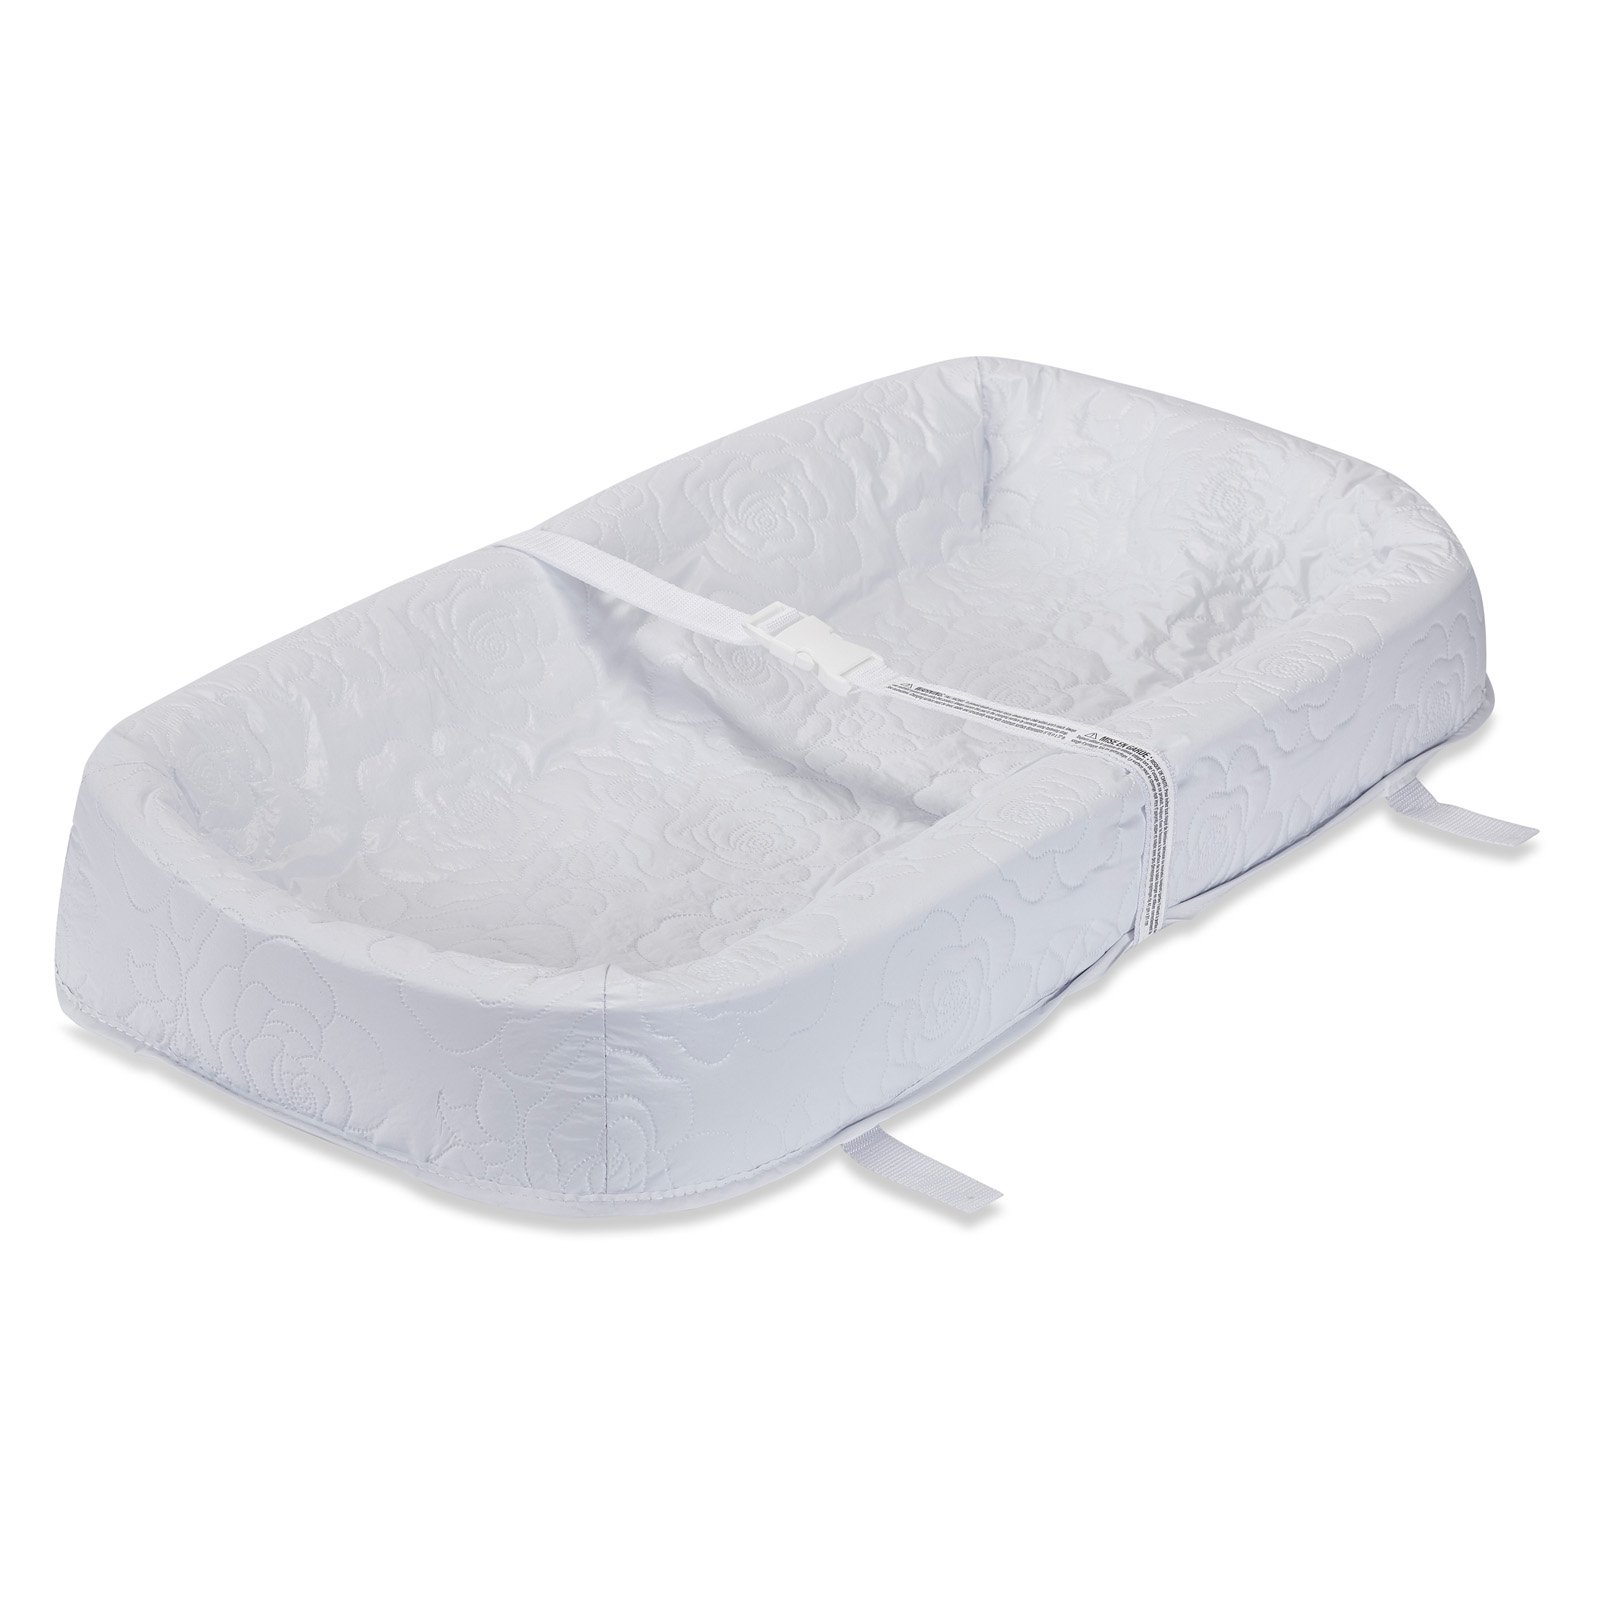 LA Baby Cocoon Changing Pad by L.A. Baby